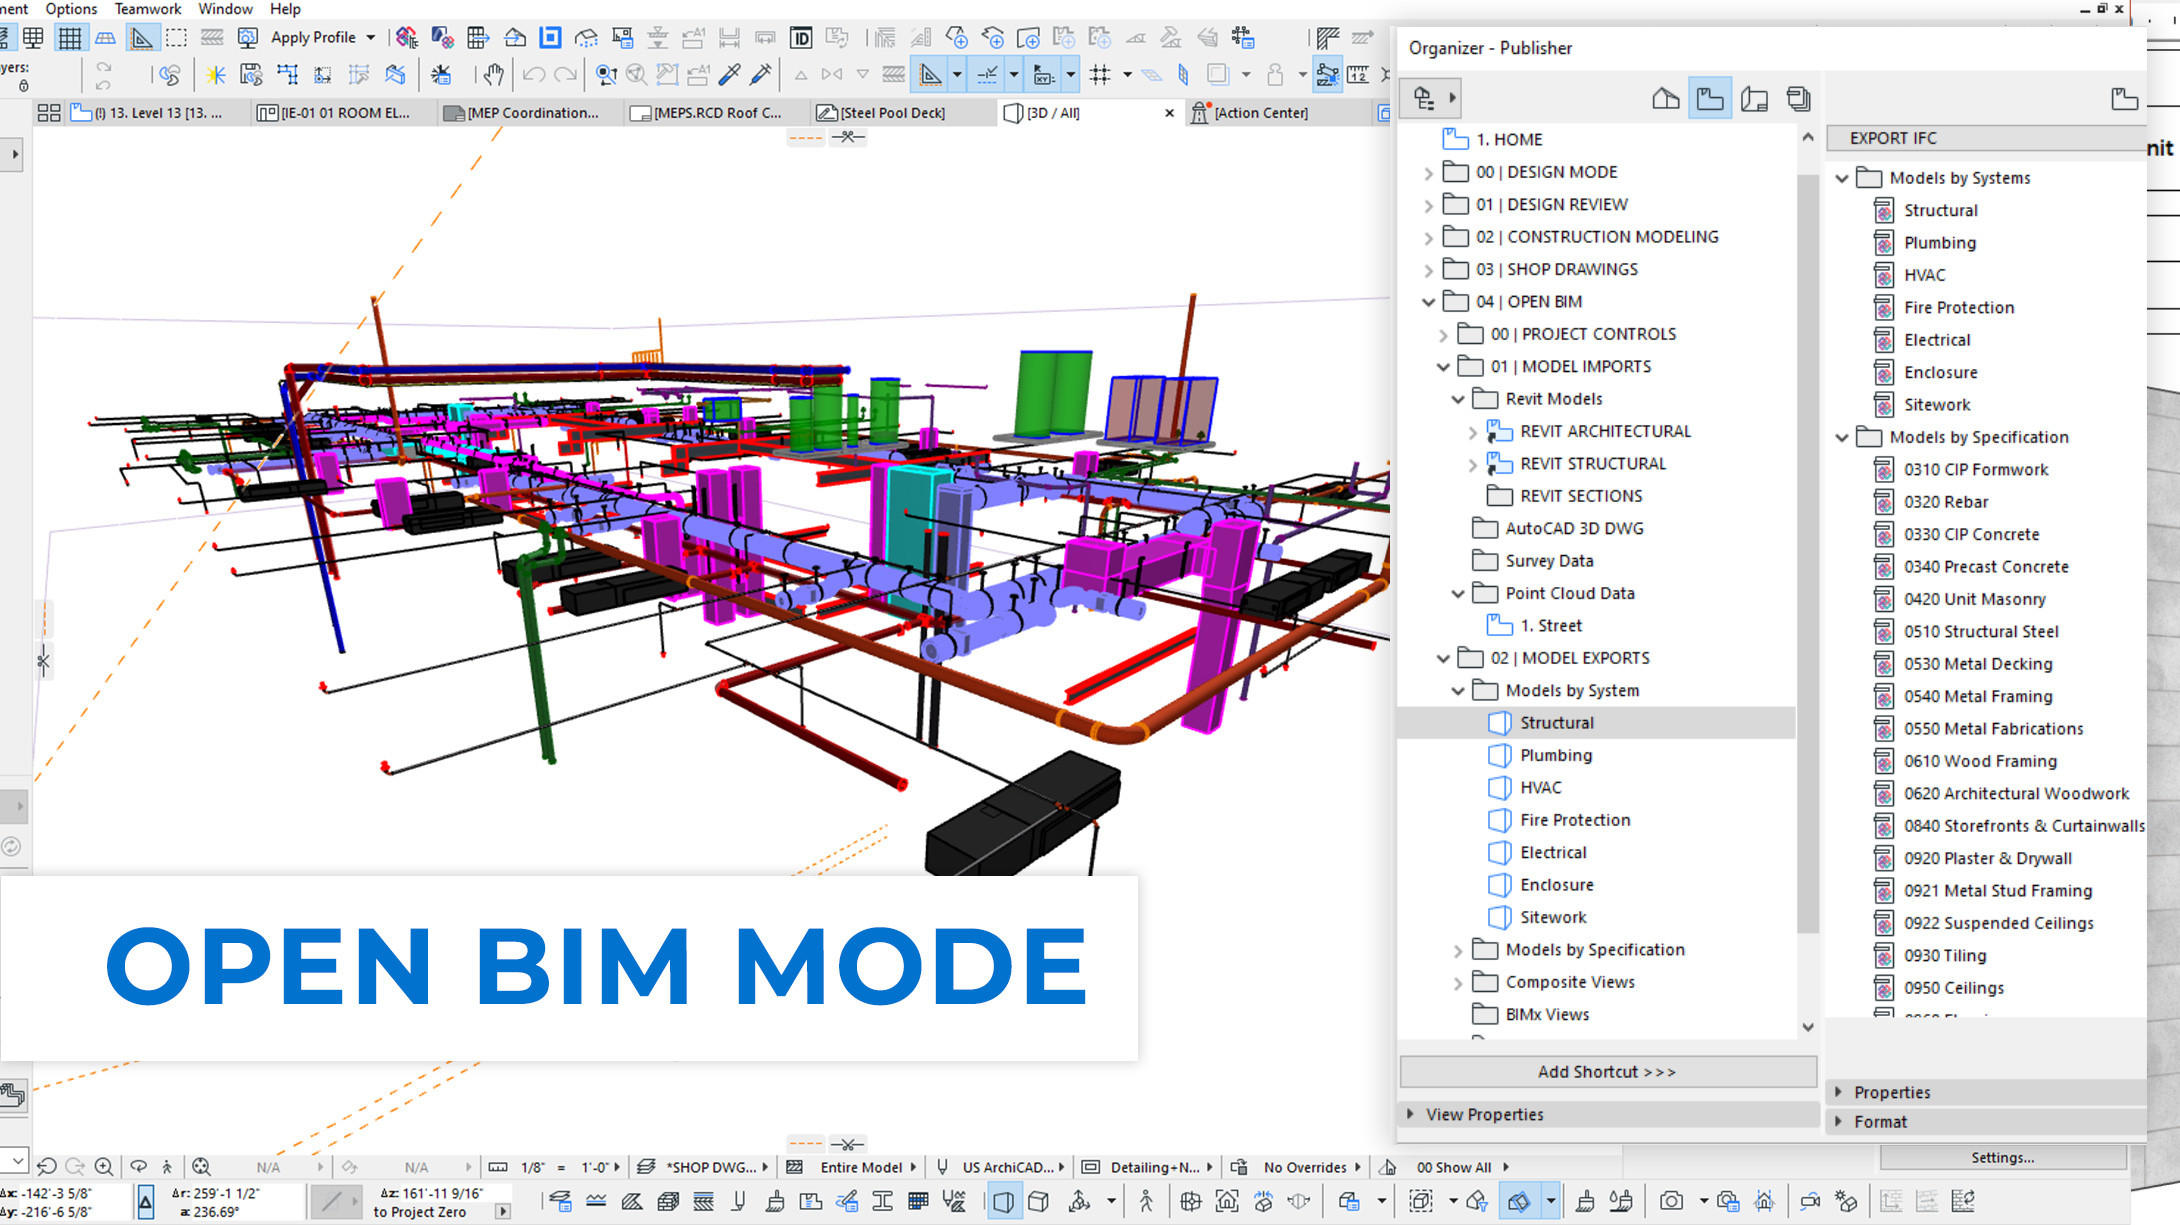 CONTRABIM Open BIM Mode